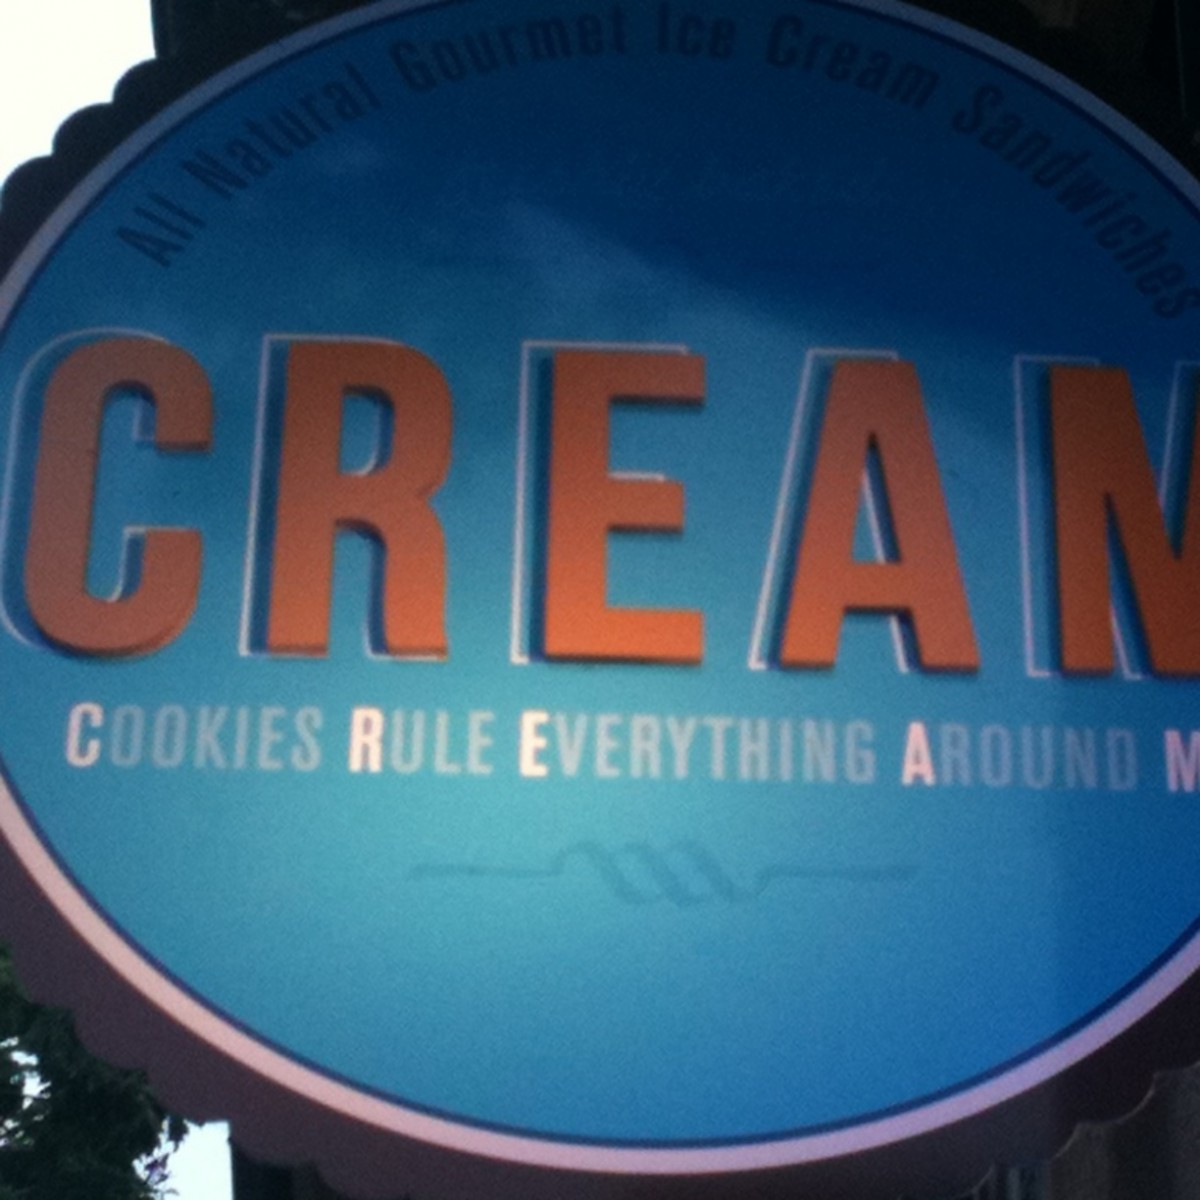 Cream (cookies Rule Everything Around Me), Berkeley, California